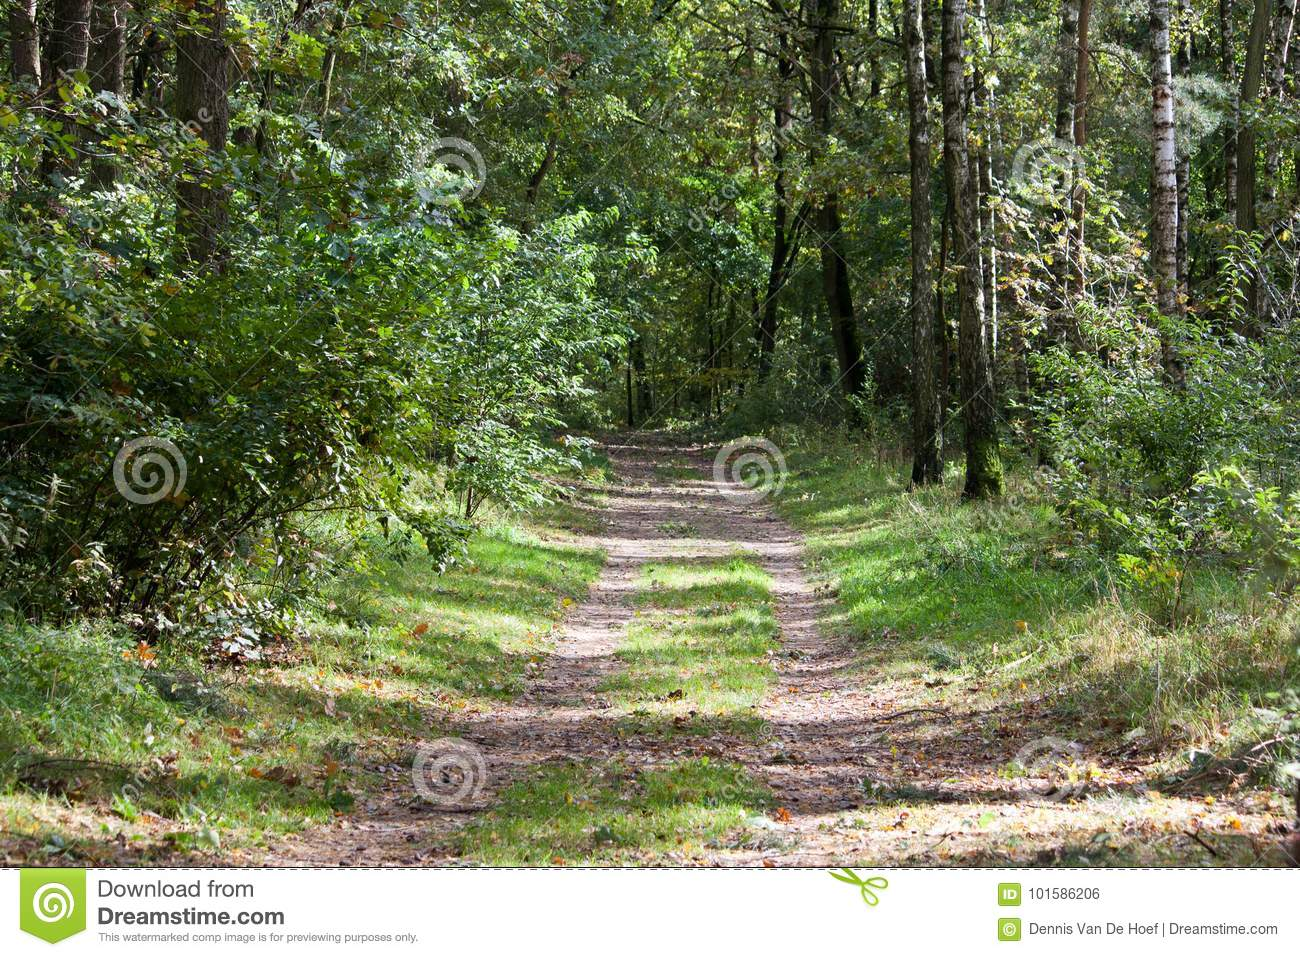 Sand road through forest.